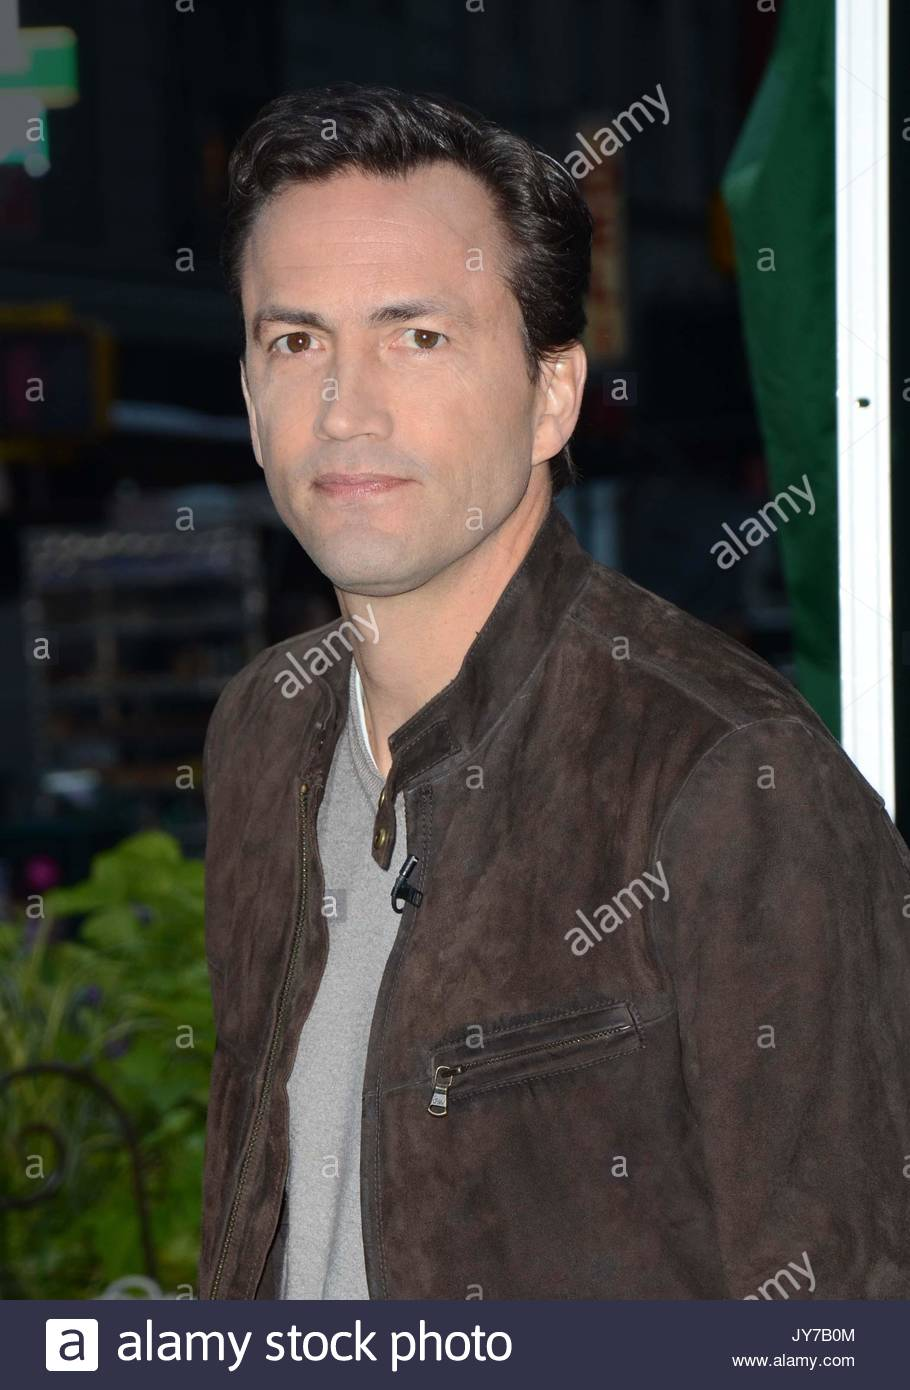 andrew shue stock photos amp andrew shue stock images alamy